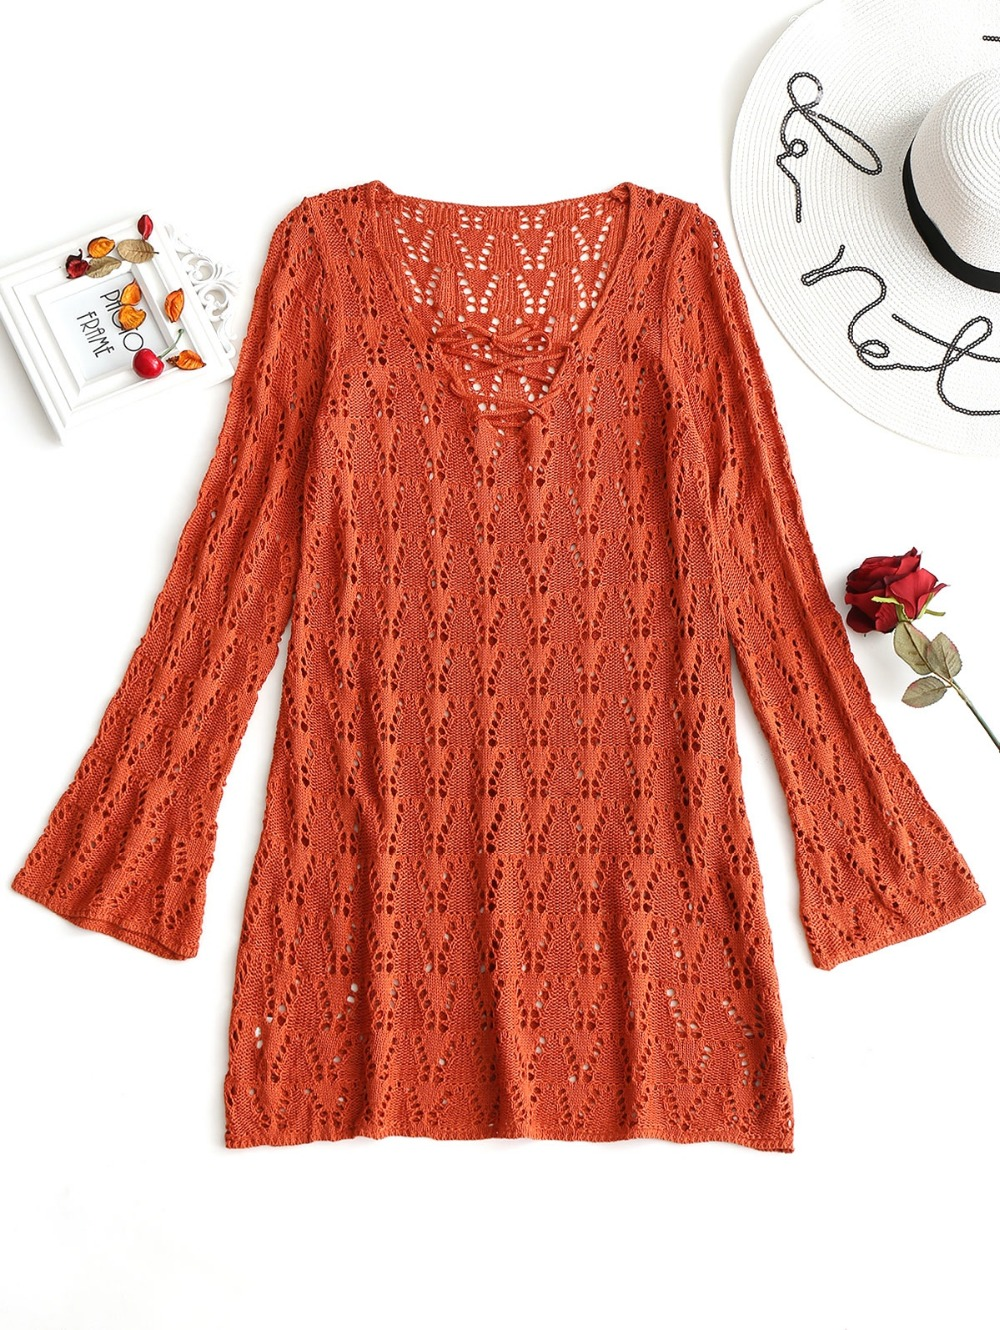 Women Bathing Suit Covers Dreses V Neck Crochet Cover-up Dress Long Sleeves Lace up Solid Hollow Out Female Beach Mini Dress